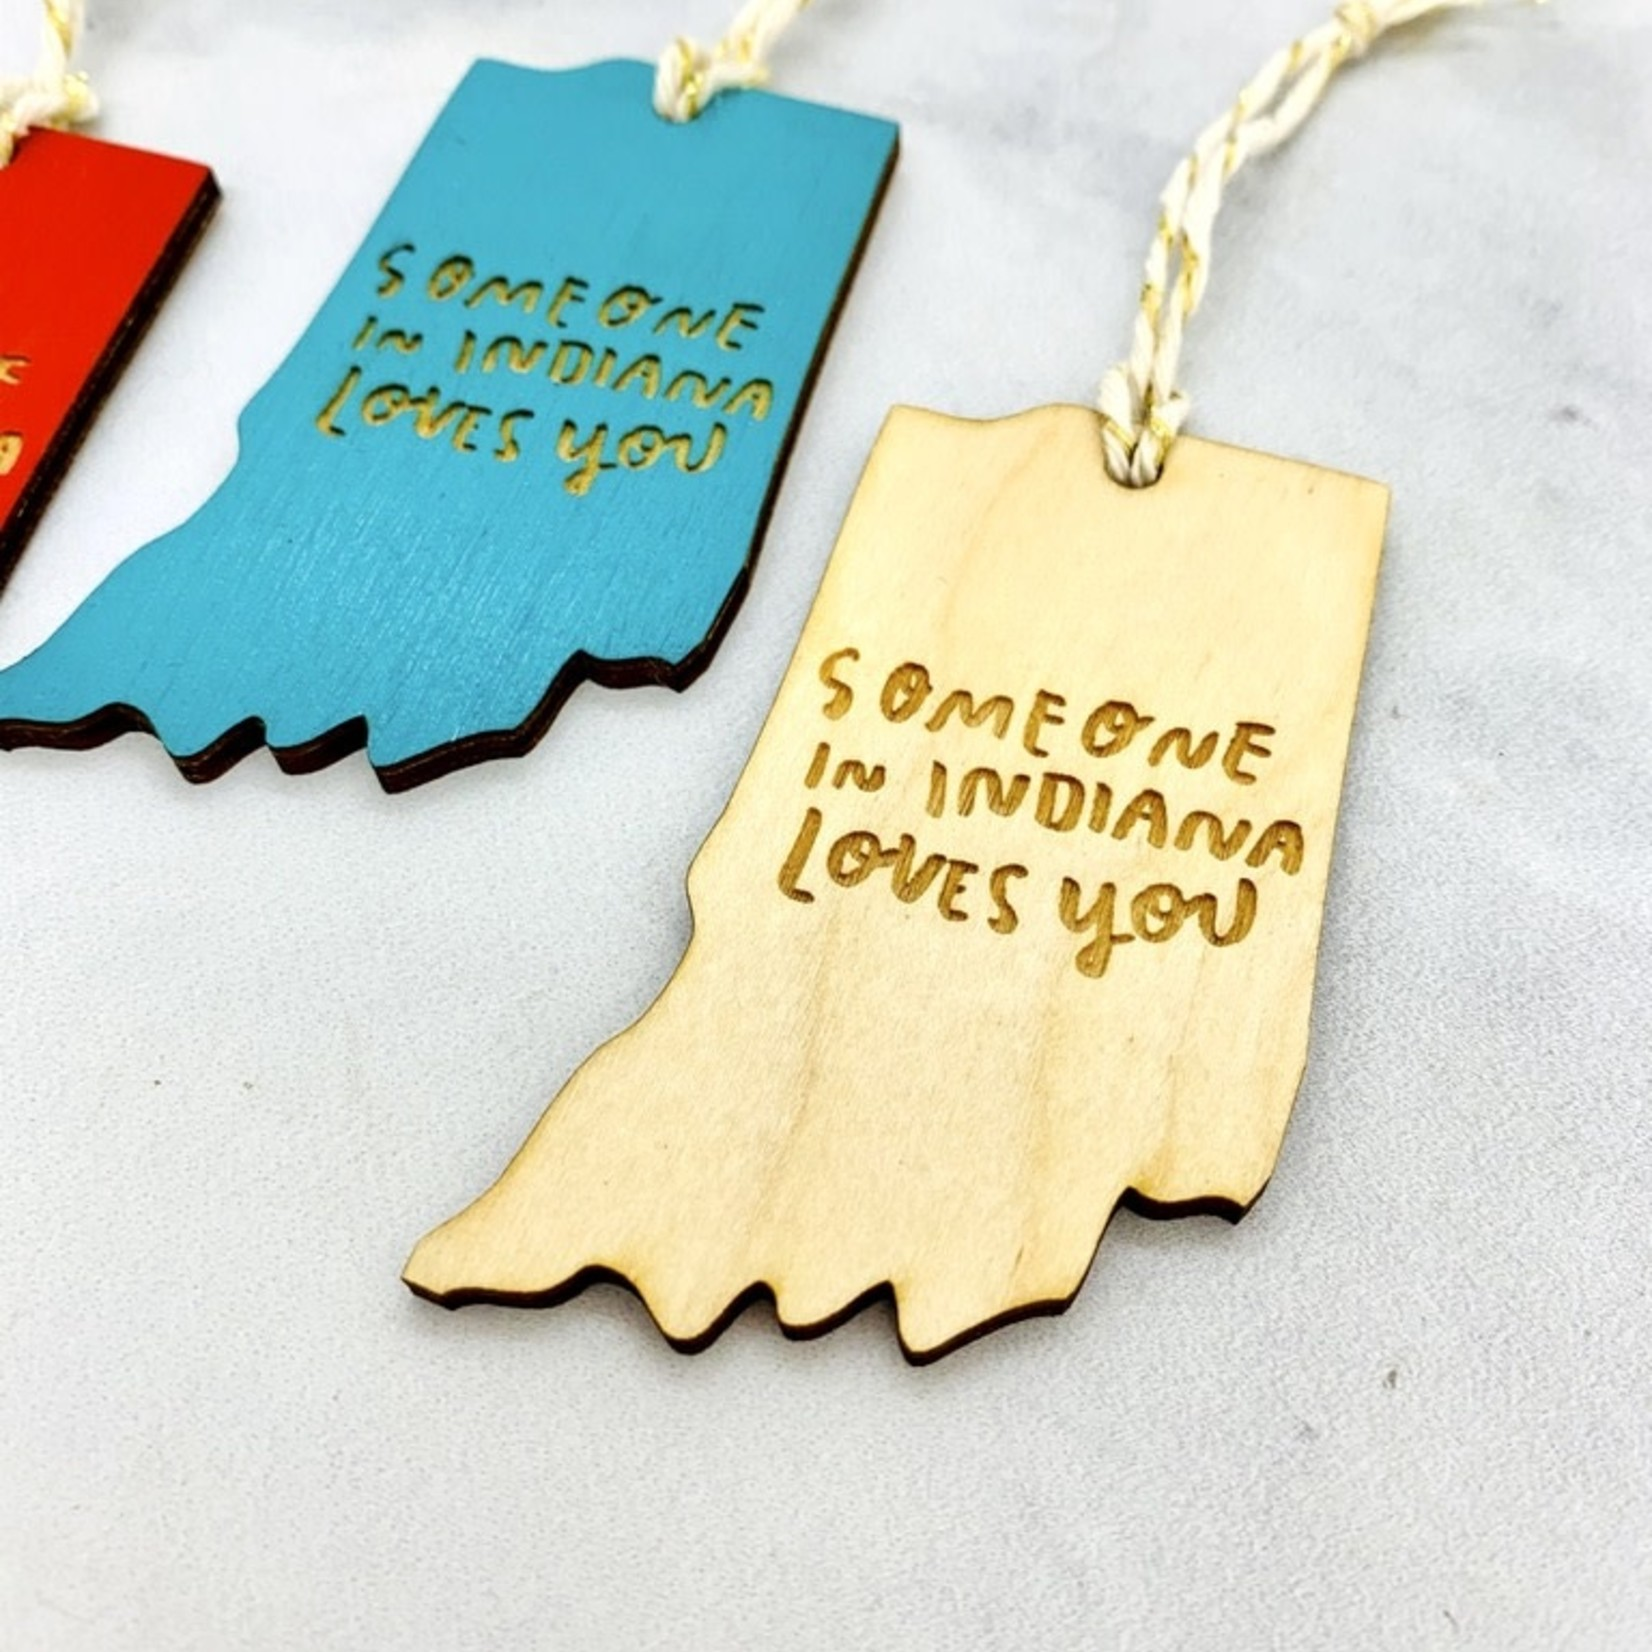 Someone In Indiana Loves You Ornament